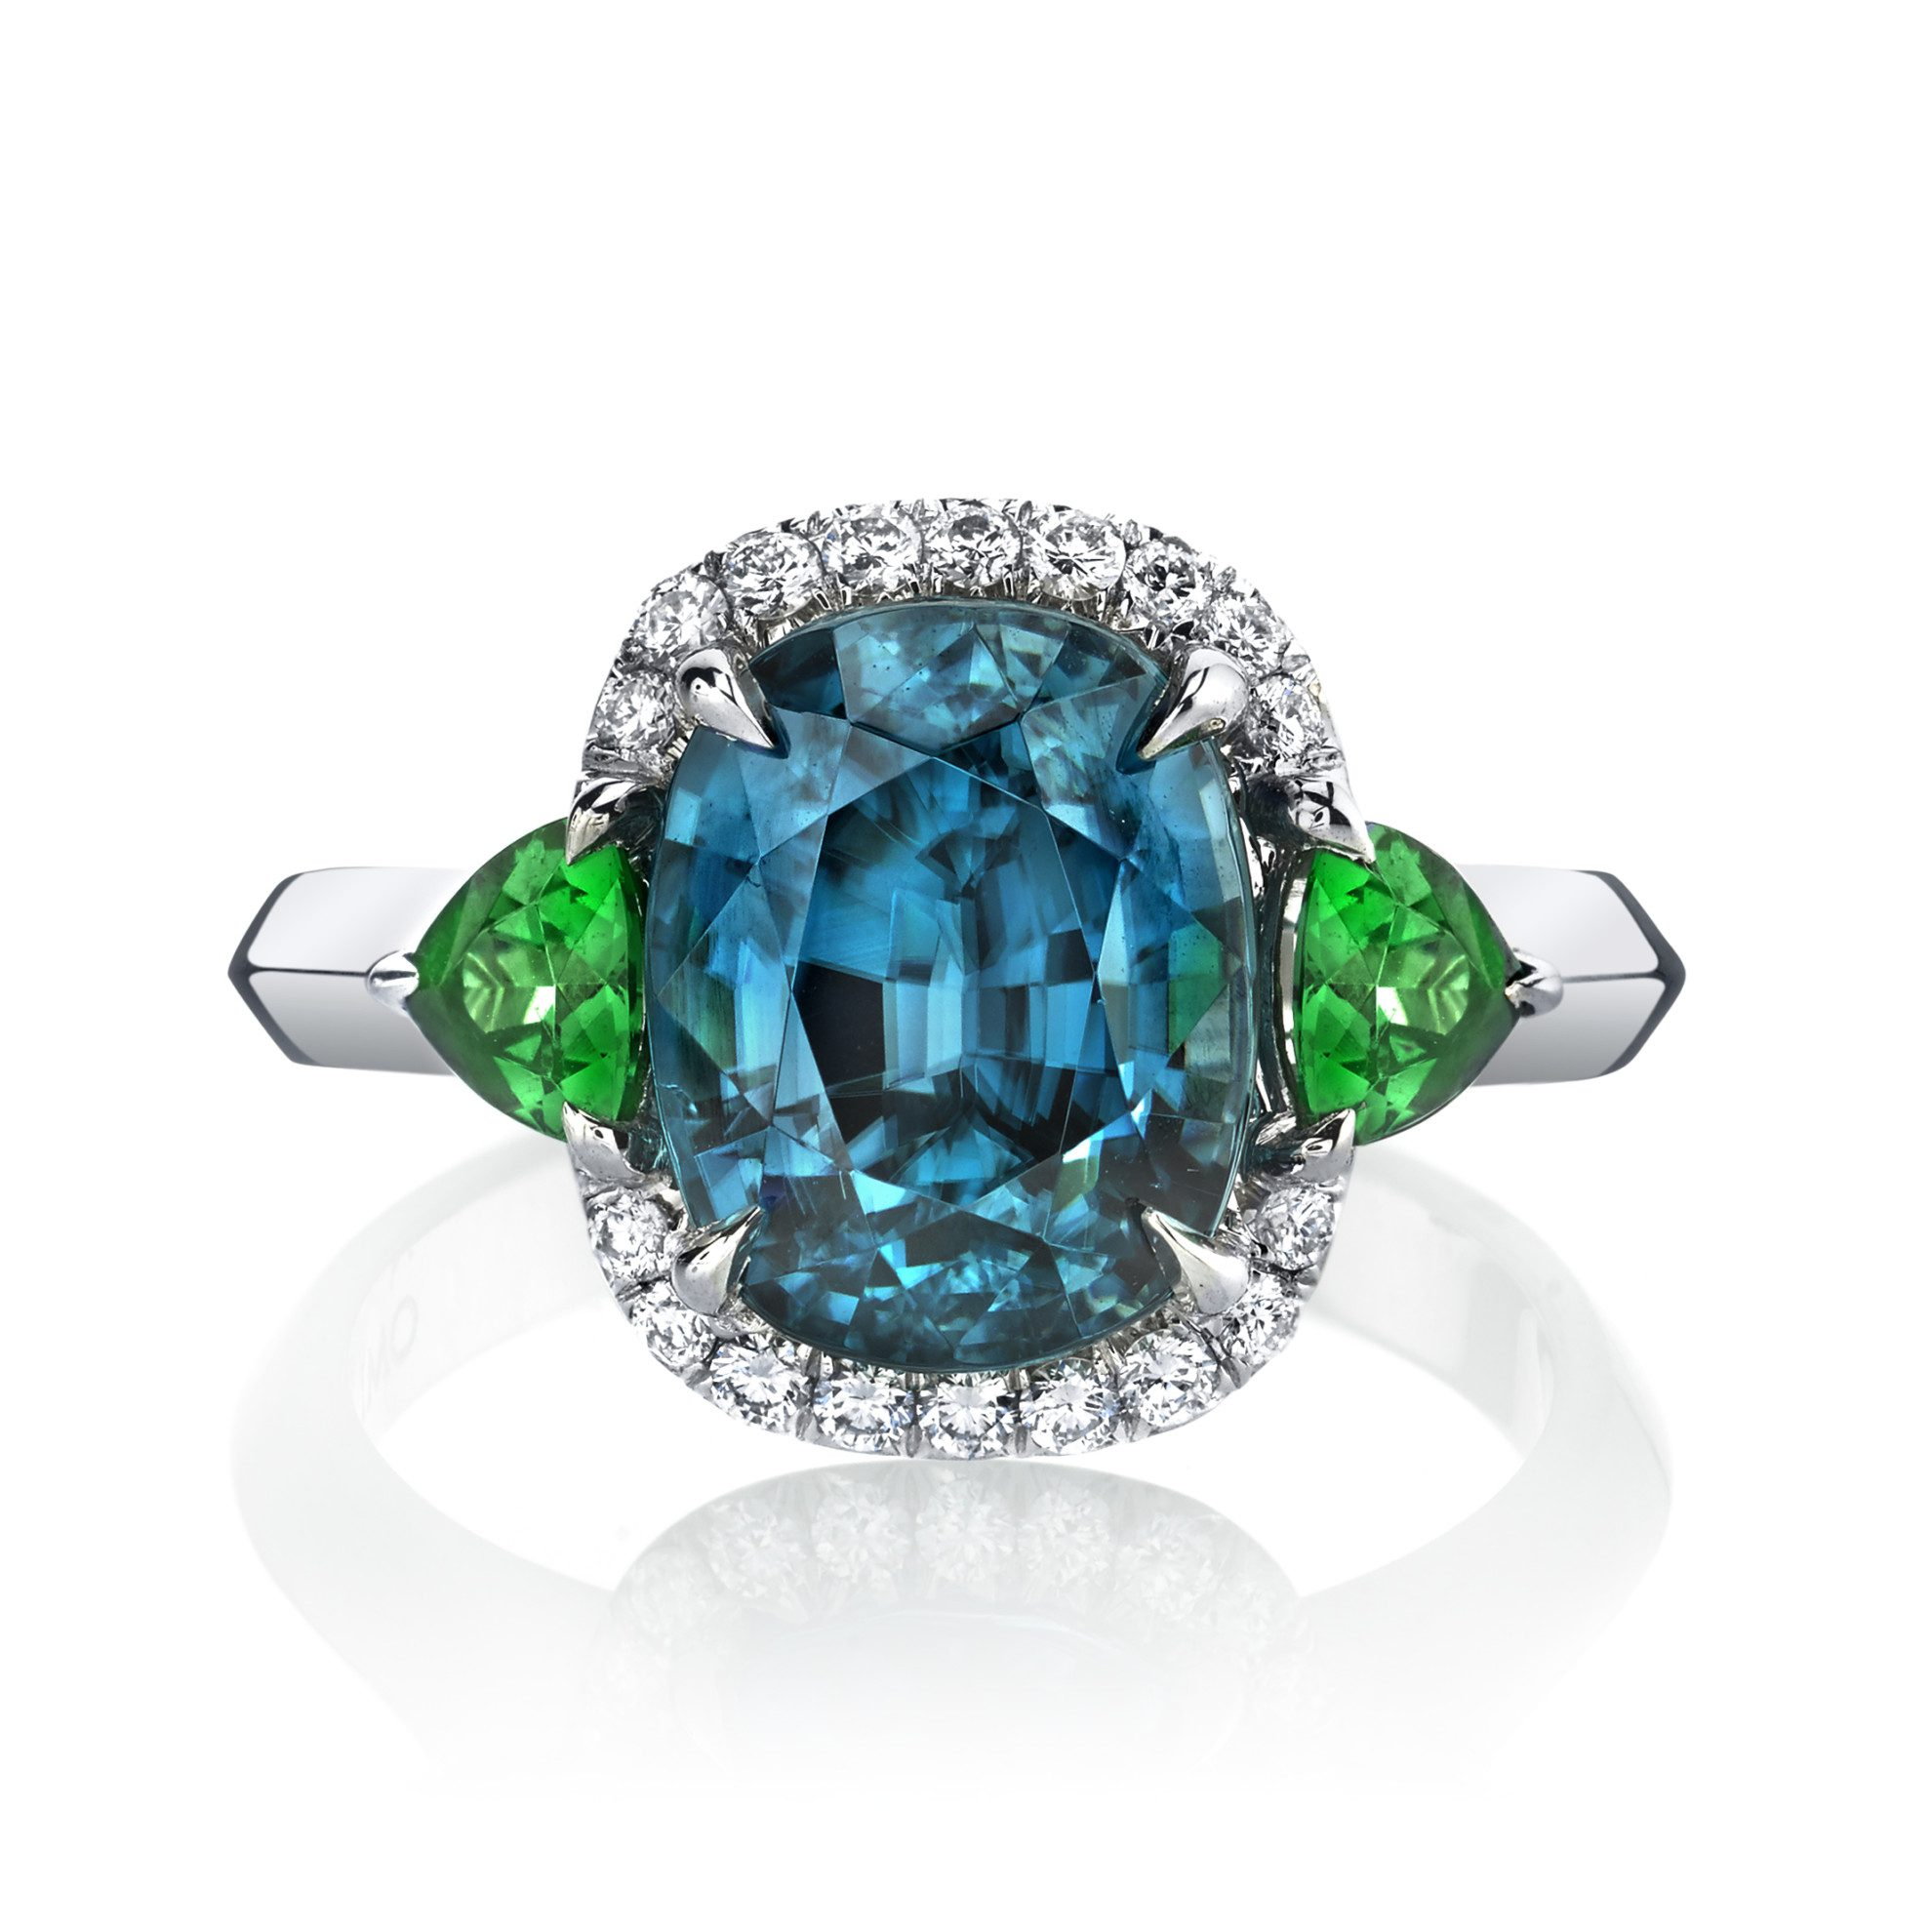 tsavorite green buying blue article society zircon guide international diamond and ring gem